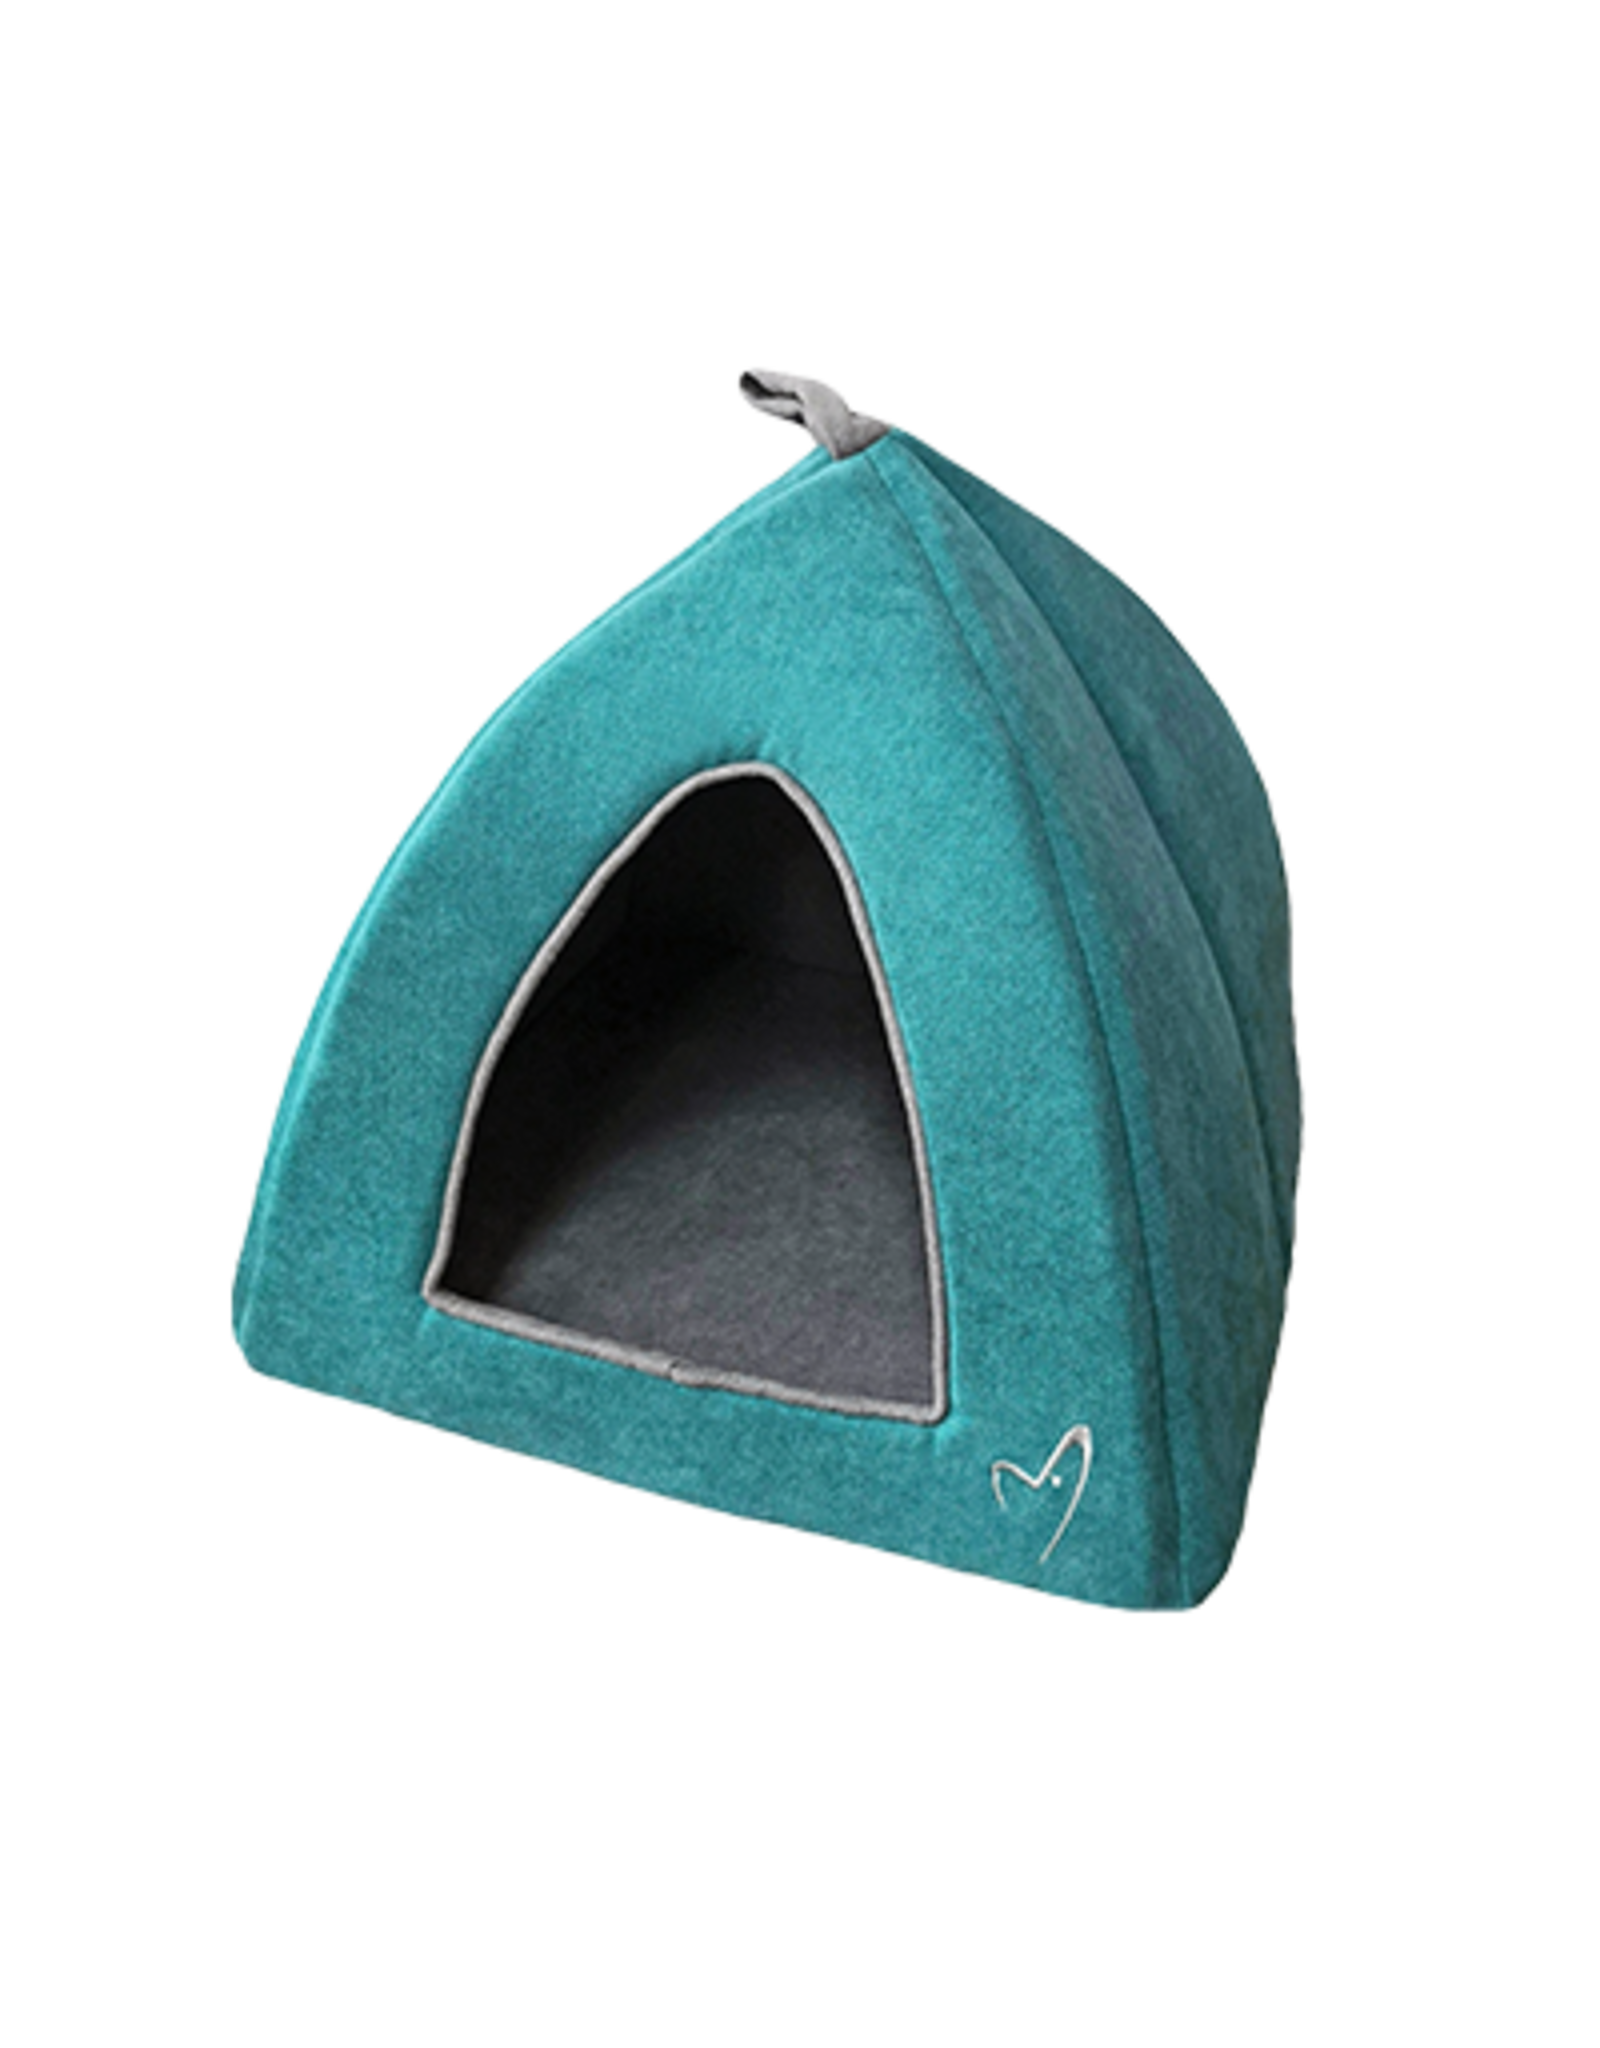 Gor Pets Camden Pyramid Cat Bed 40x40x40cm in Teal